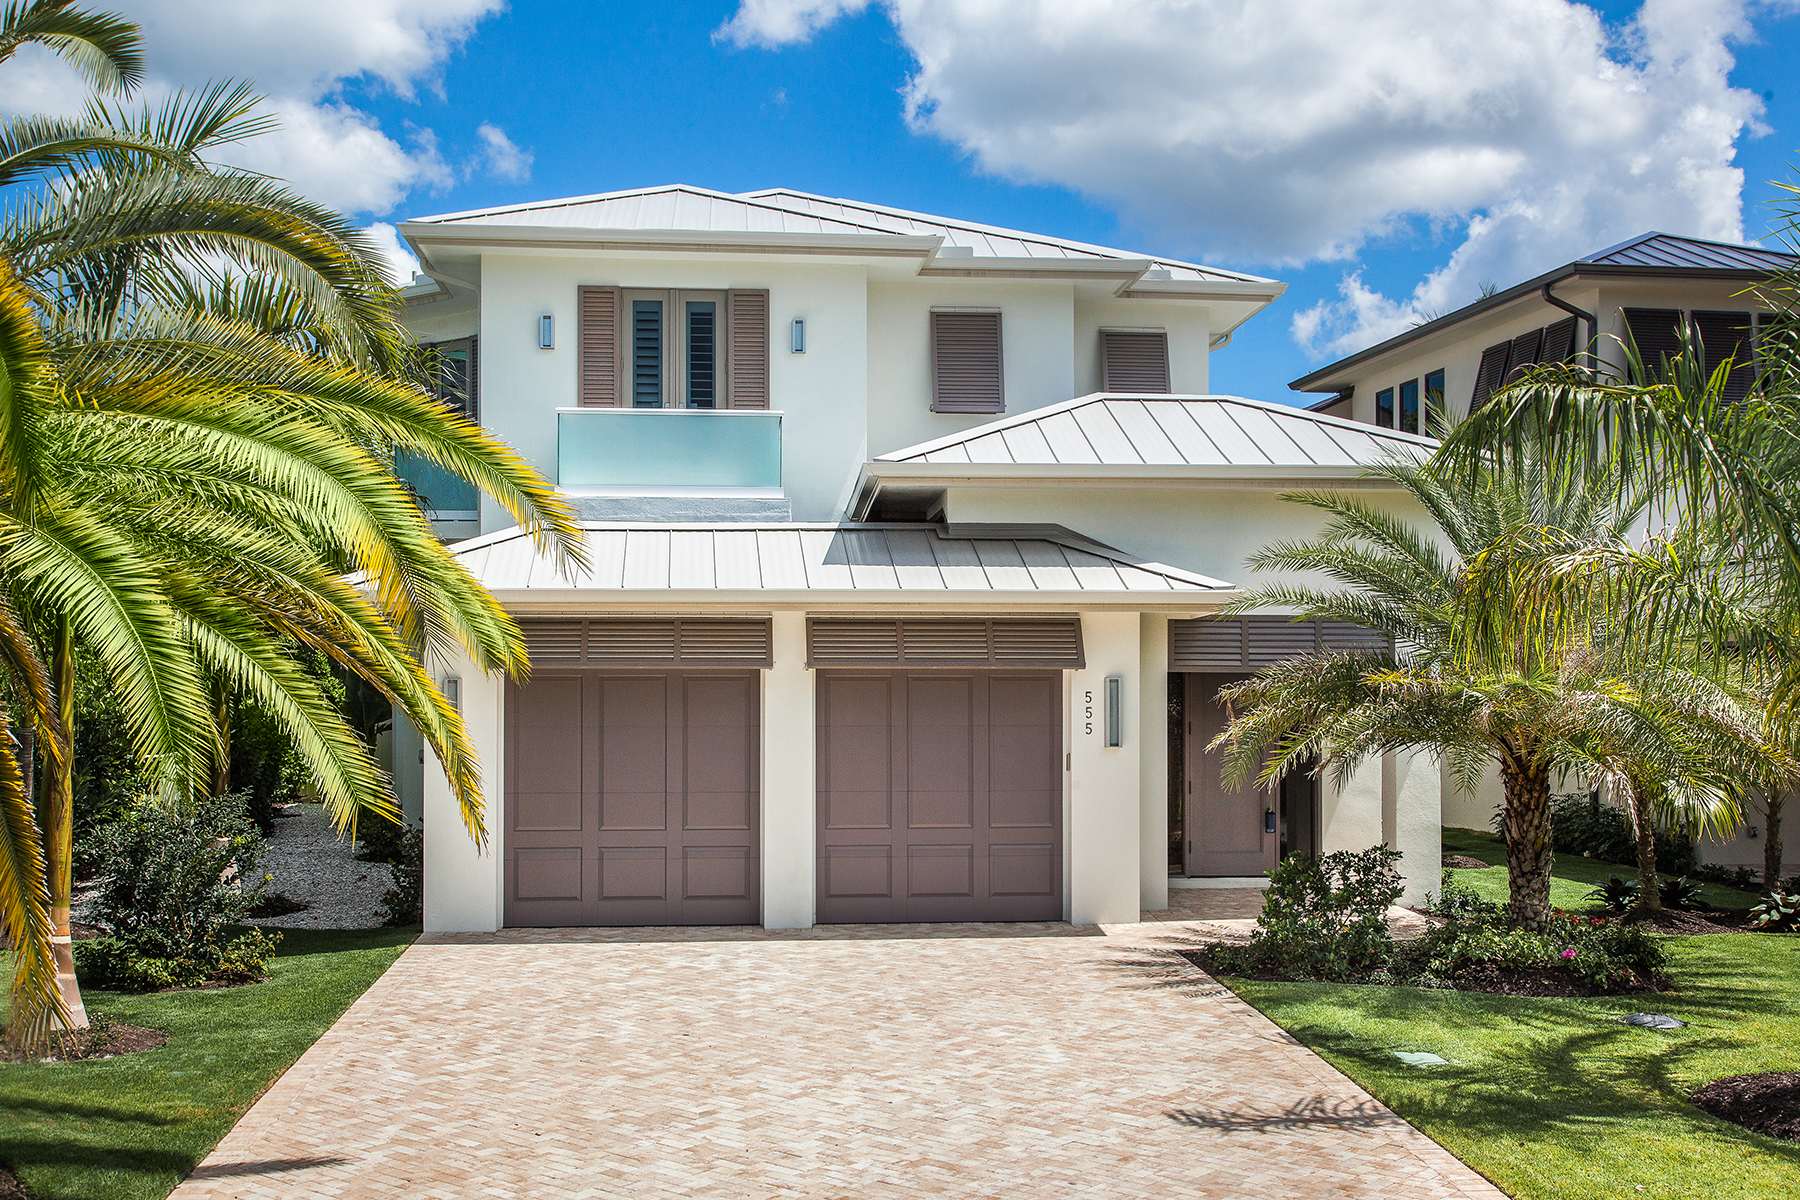 Maison unifamiliale pour l Vente à MOORINGS - FAIRWAY TERRACE 555 Fairway Terr Naples, Florida, 34103 États-Unis